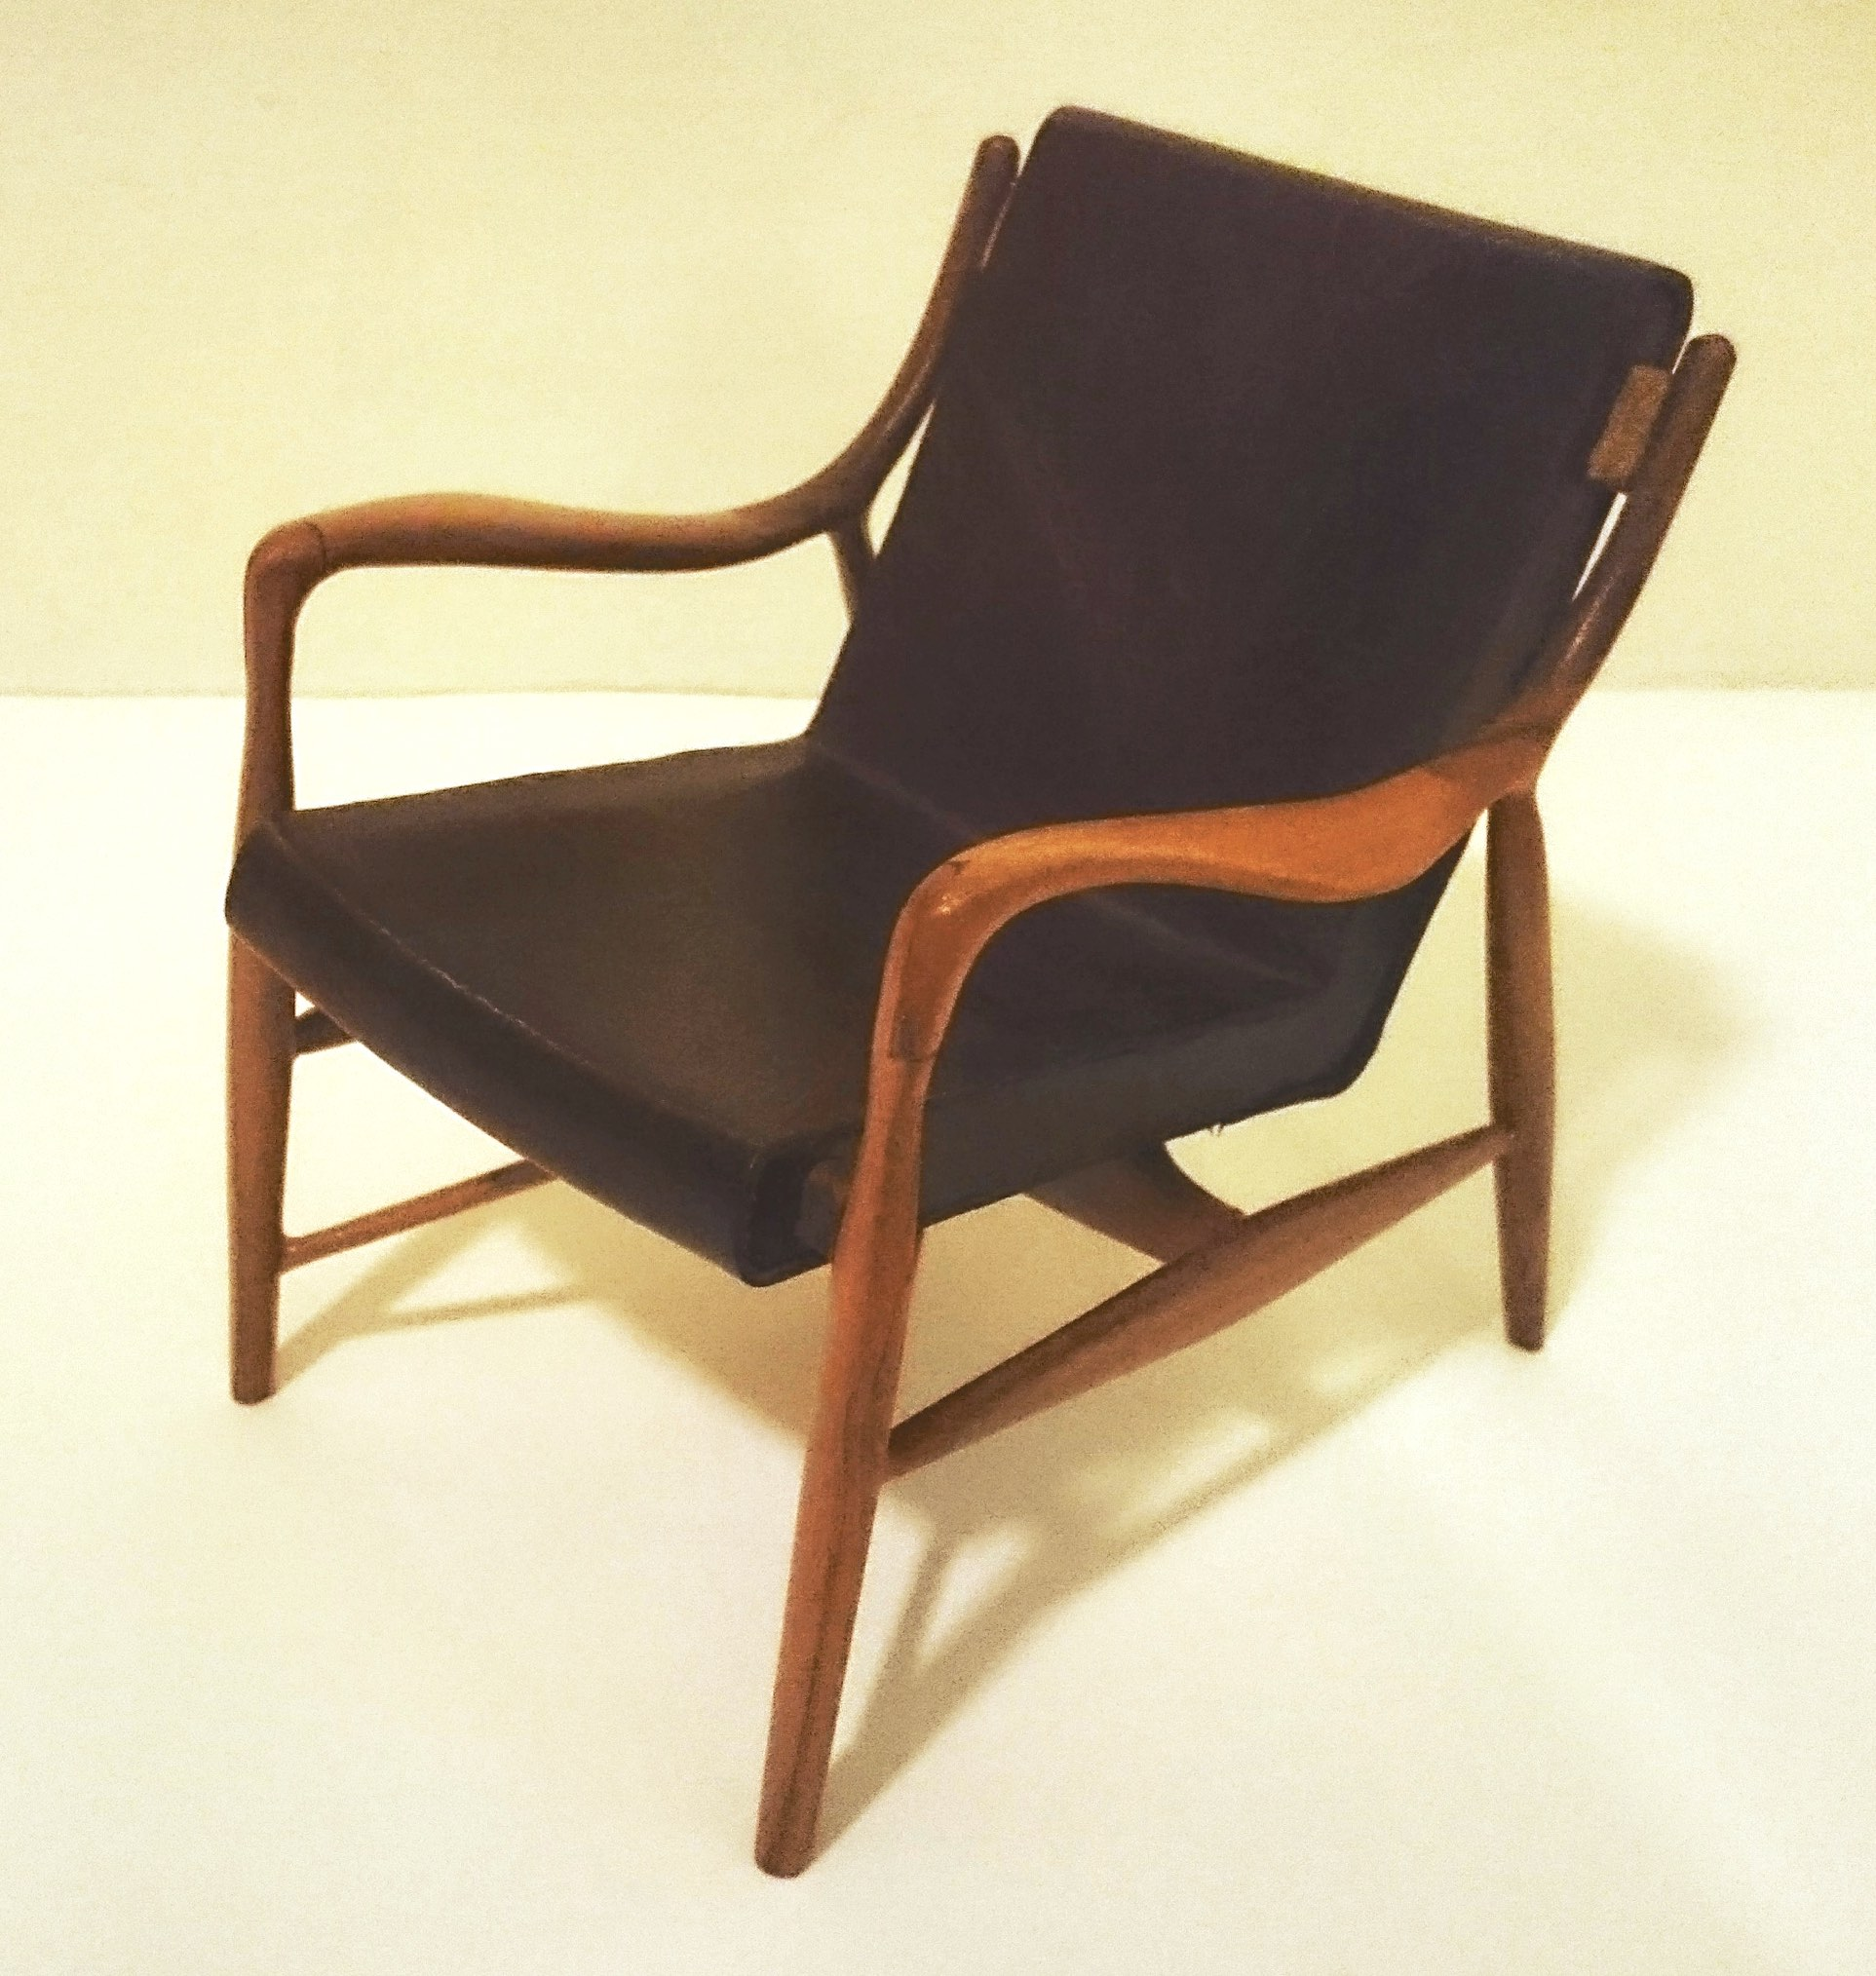 Finn juhl 45 chair - 1:6 scale model